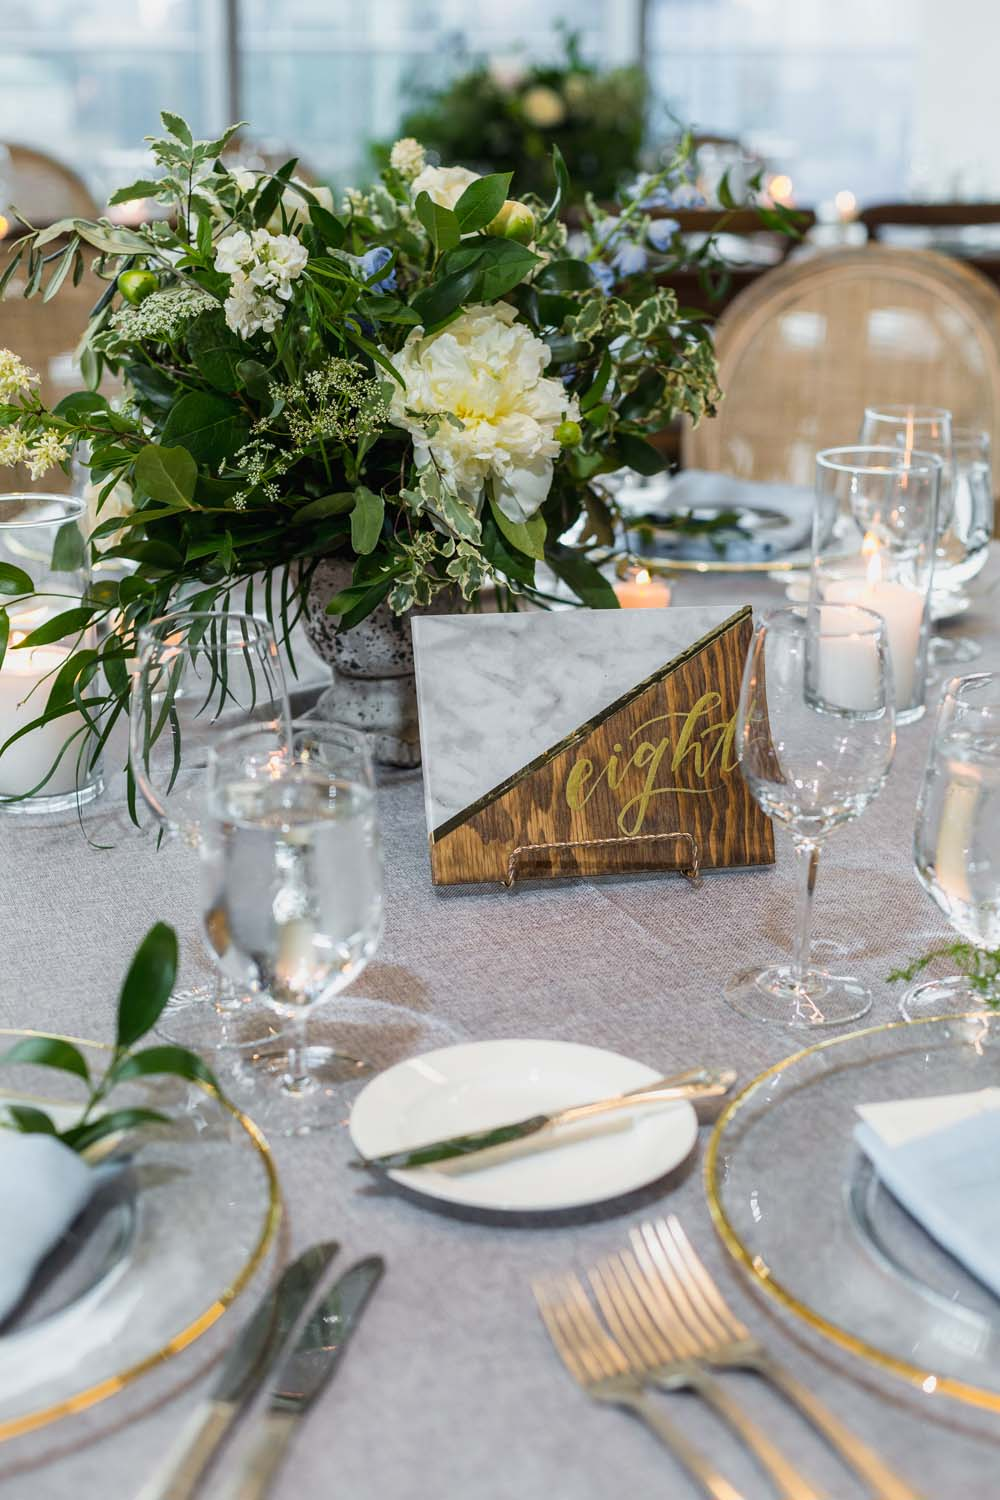 This Toronto Wedding Brings Nature to the City - Centrepiece